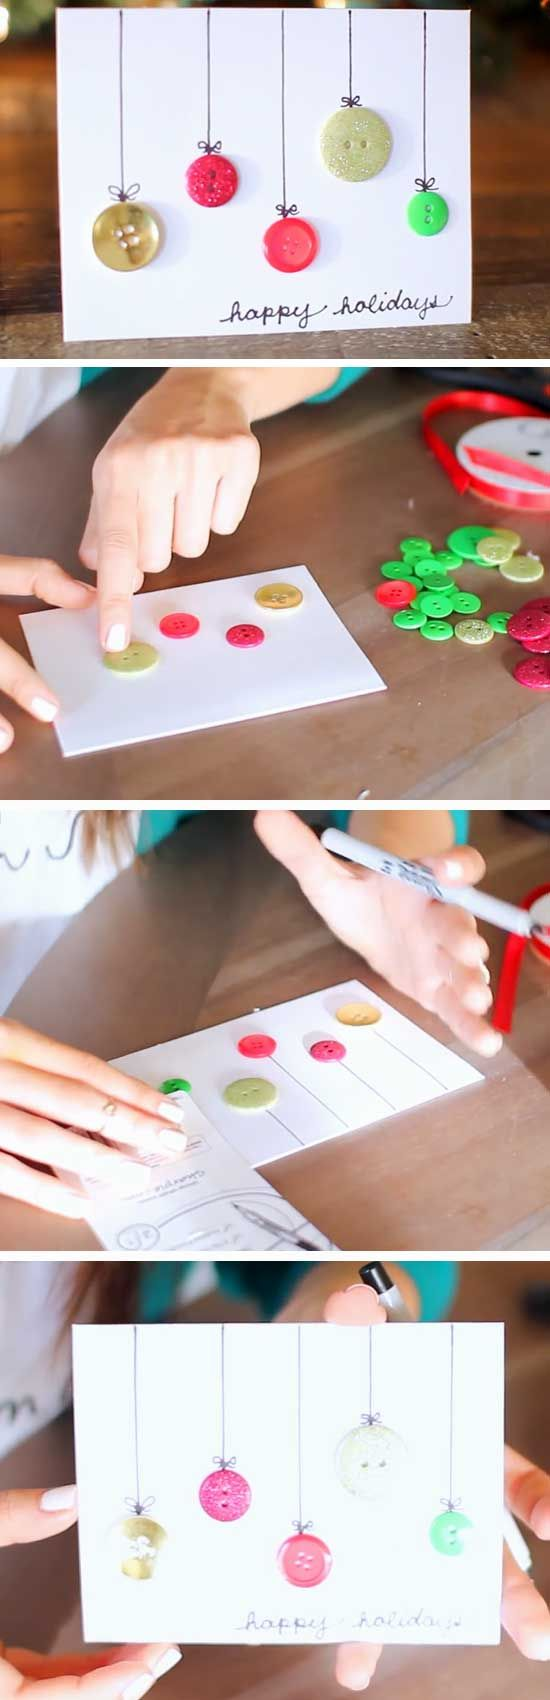 Glistening Baubles | 20 + DIY Christmas Cards for Kids to Make